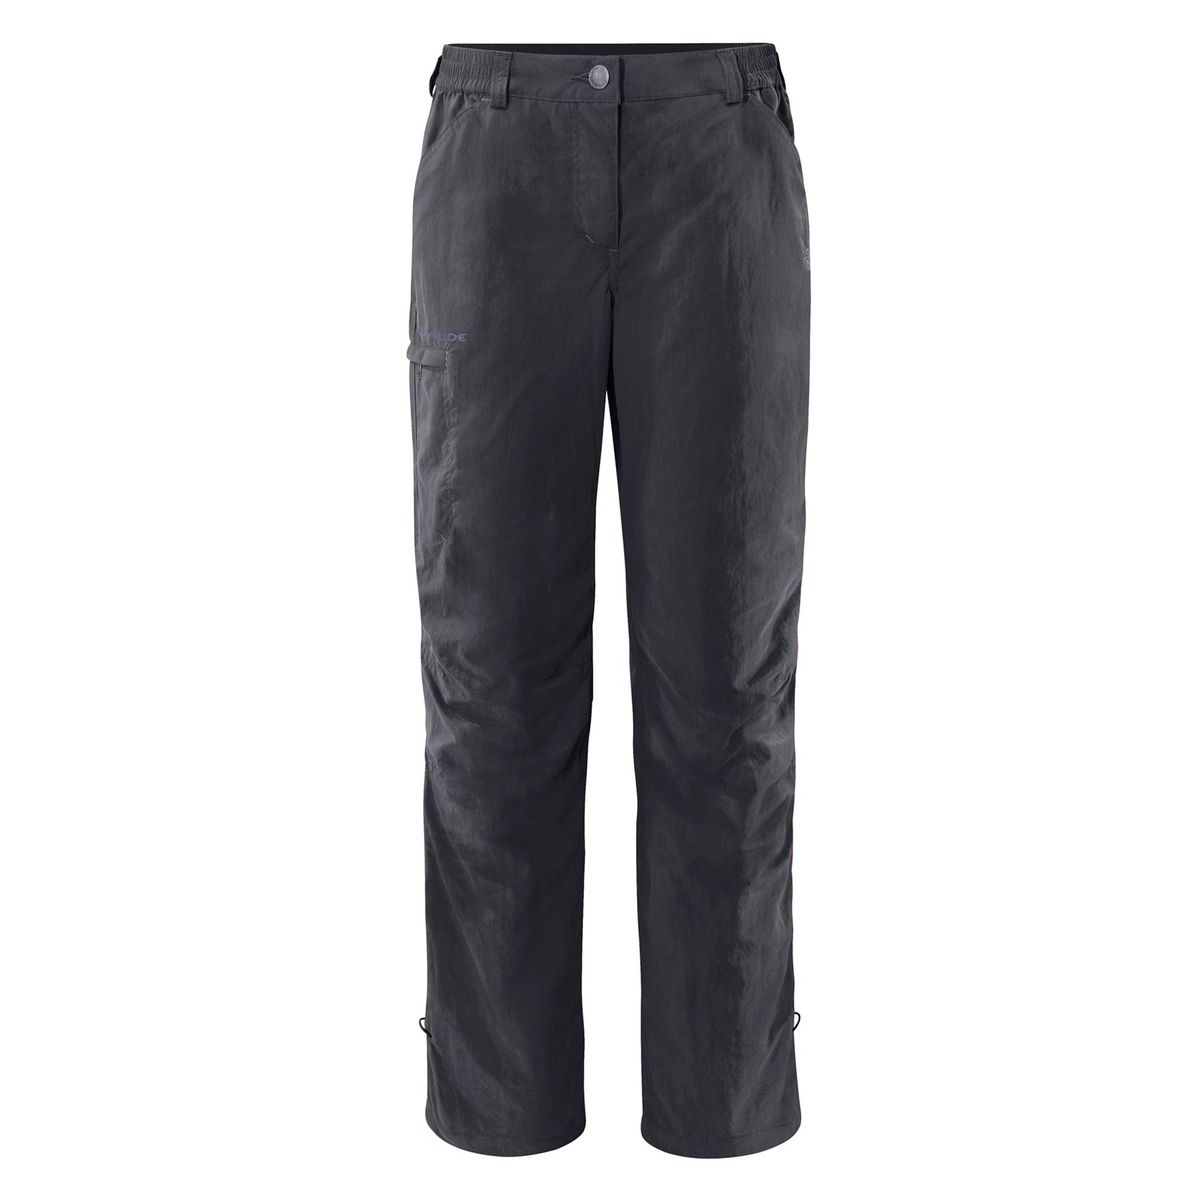 FARLEY IV women's functional trousers